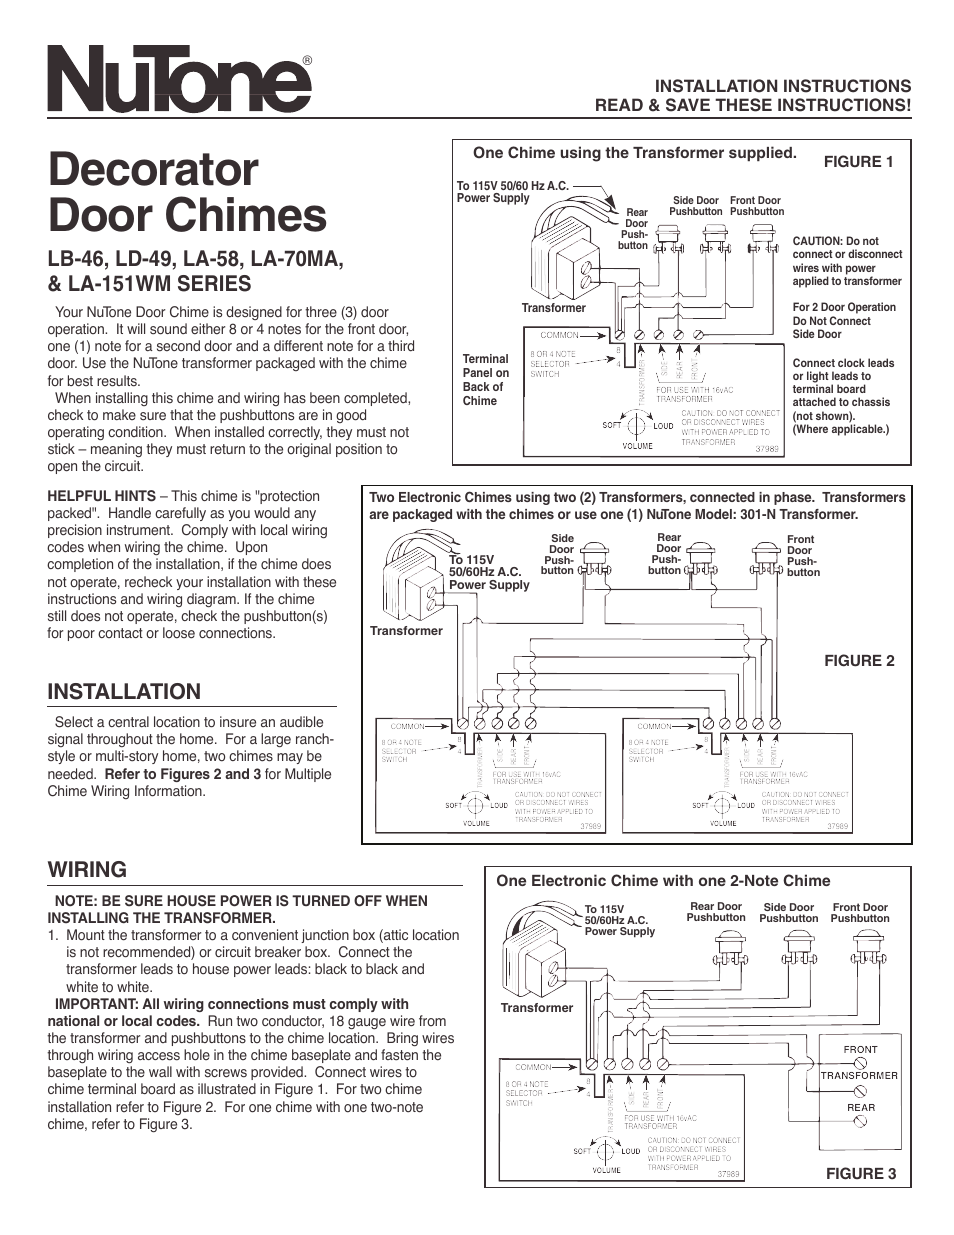 nutone decorator door chimes la 58 page1?resize=665%2C861 door bell diagram electrical contractor talk readingrat net  at reclaimingppi.co